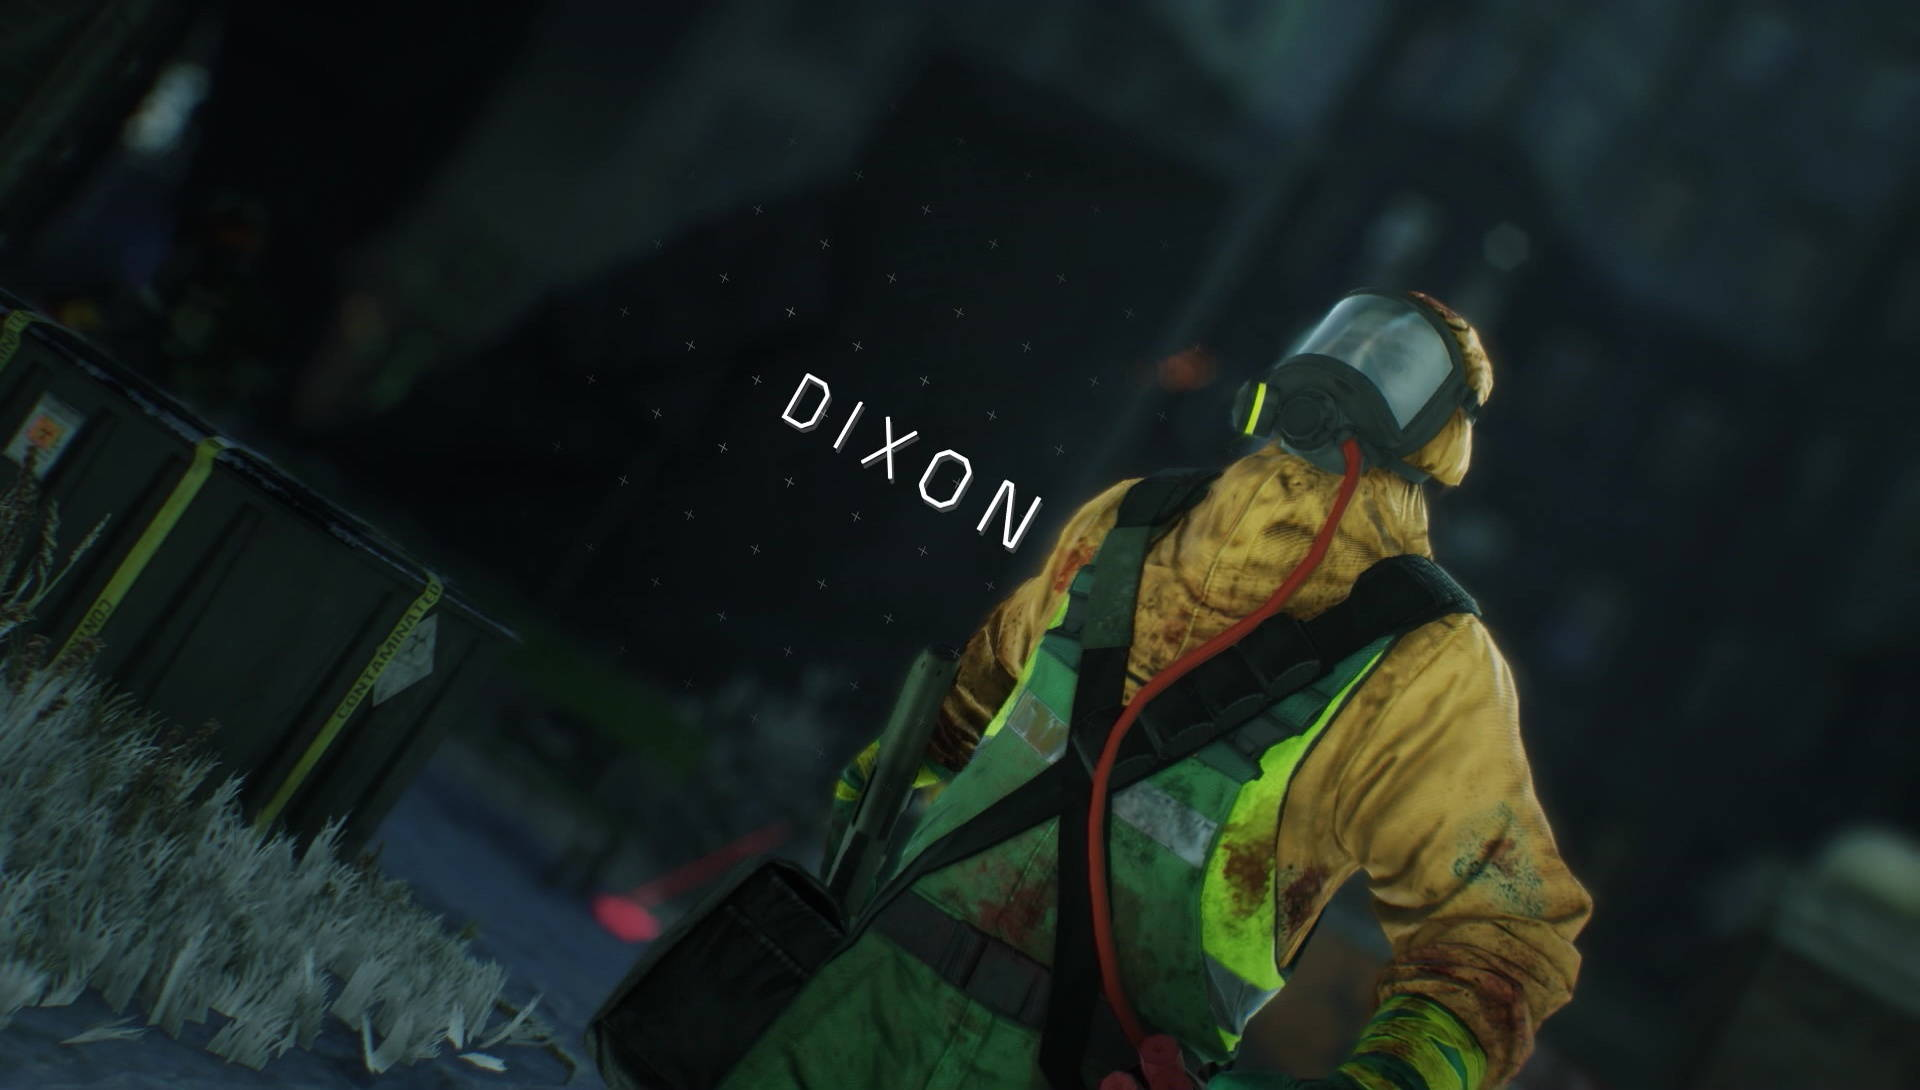 tomclancysthedivision_conflictscreens2_0017